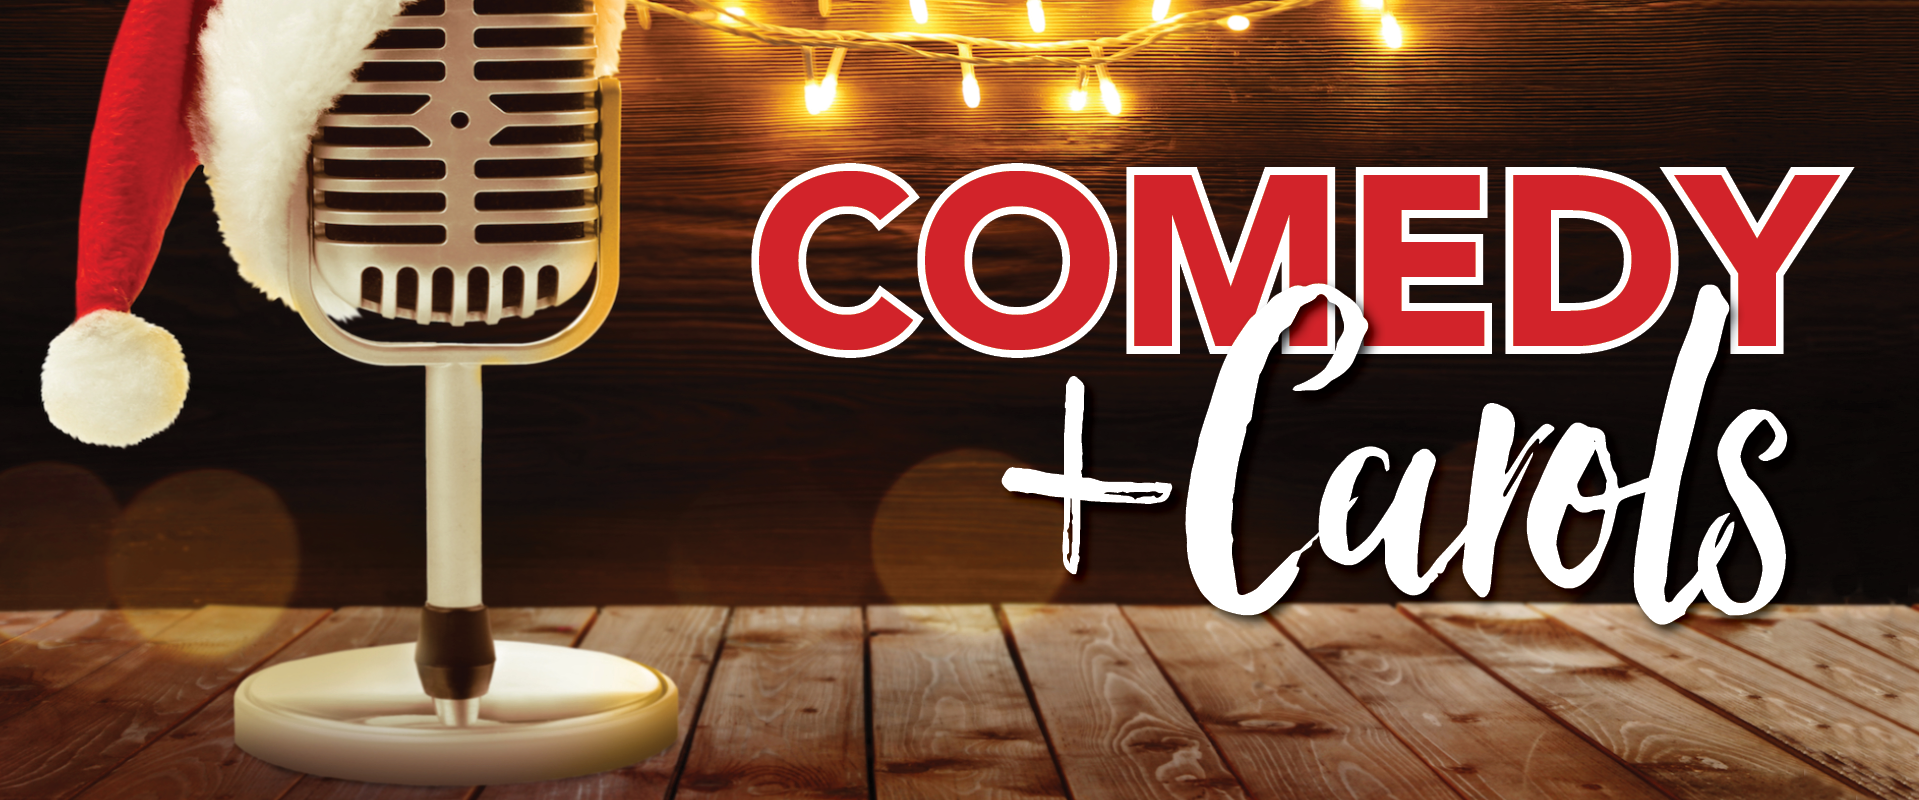 Comedy and Carols